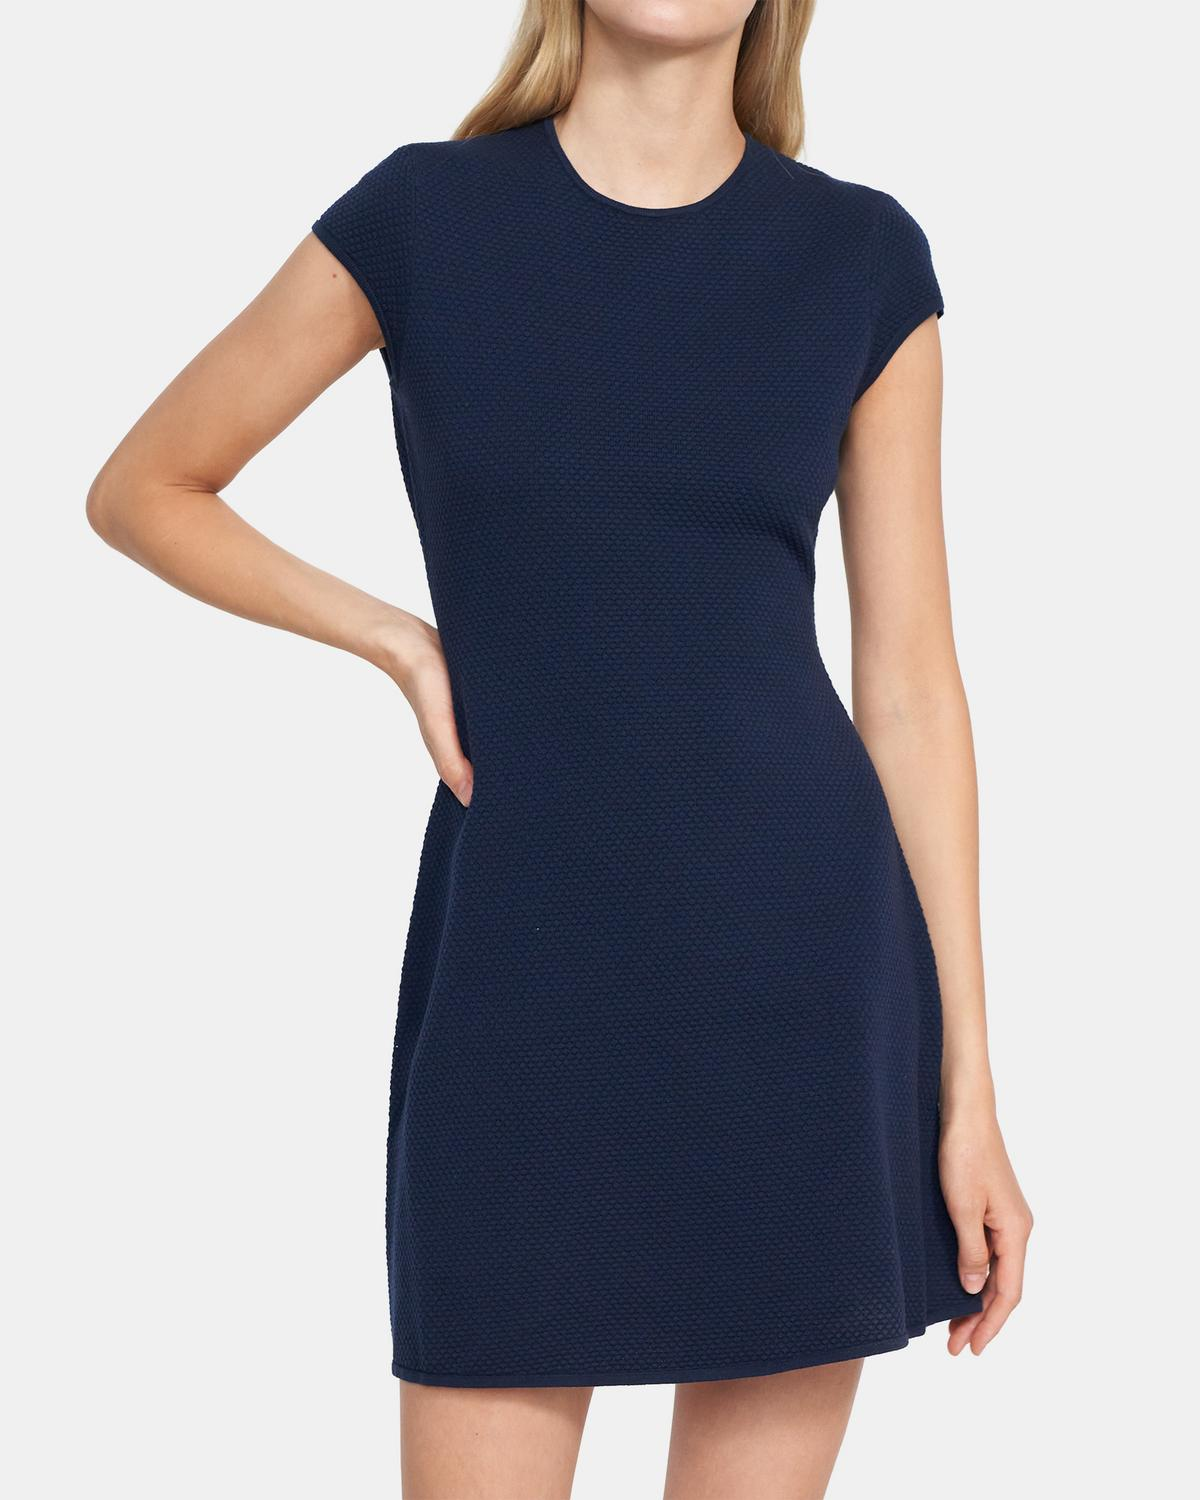 Cap-Sleeve Flare Dress in Stretch Knit 0 - click to view larger image